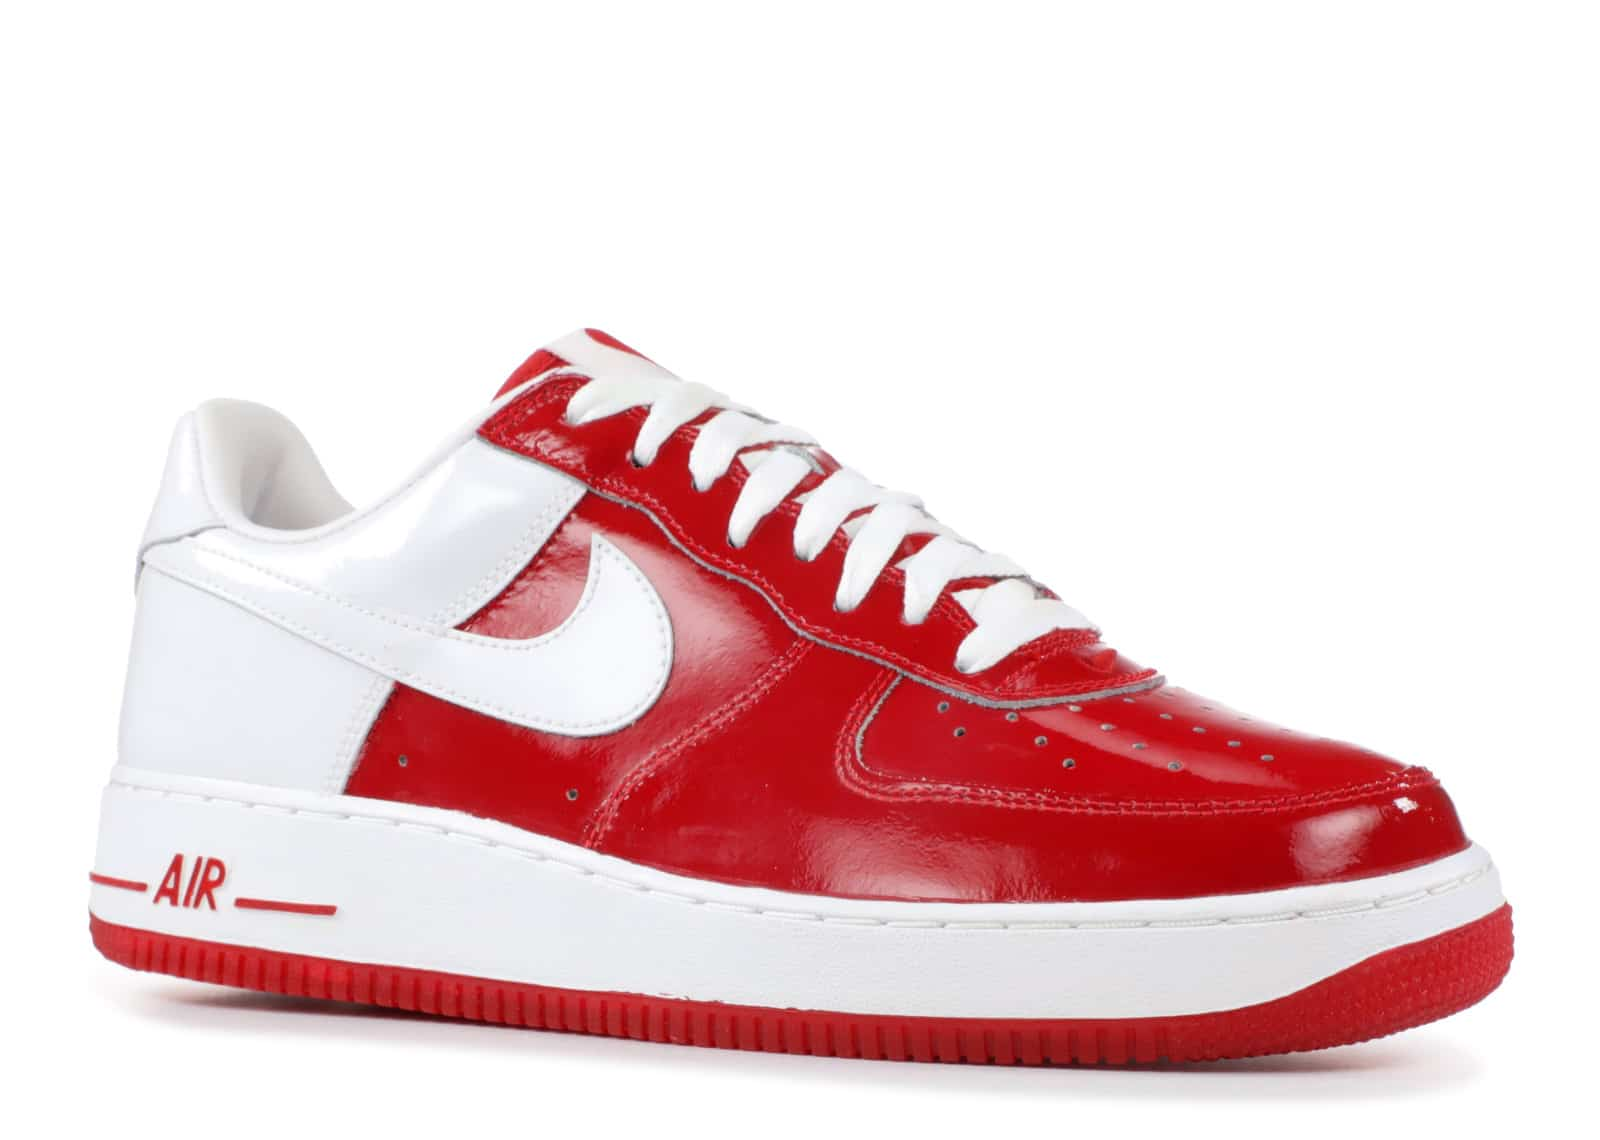 nike air force 1 valentine's day 2006